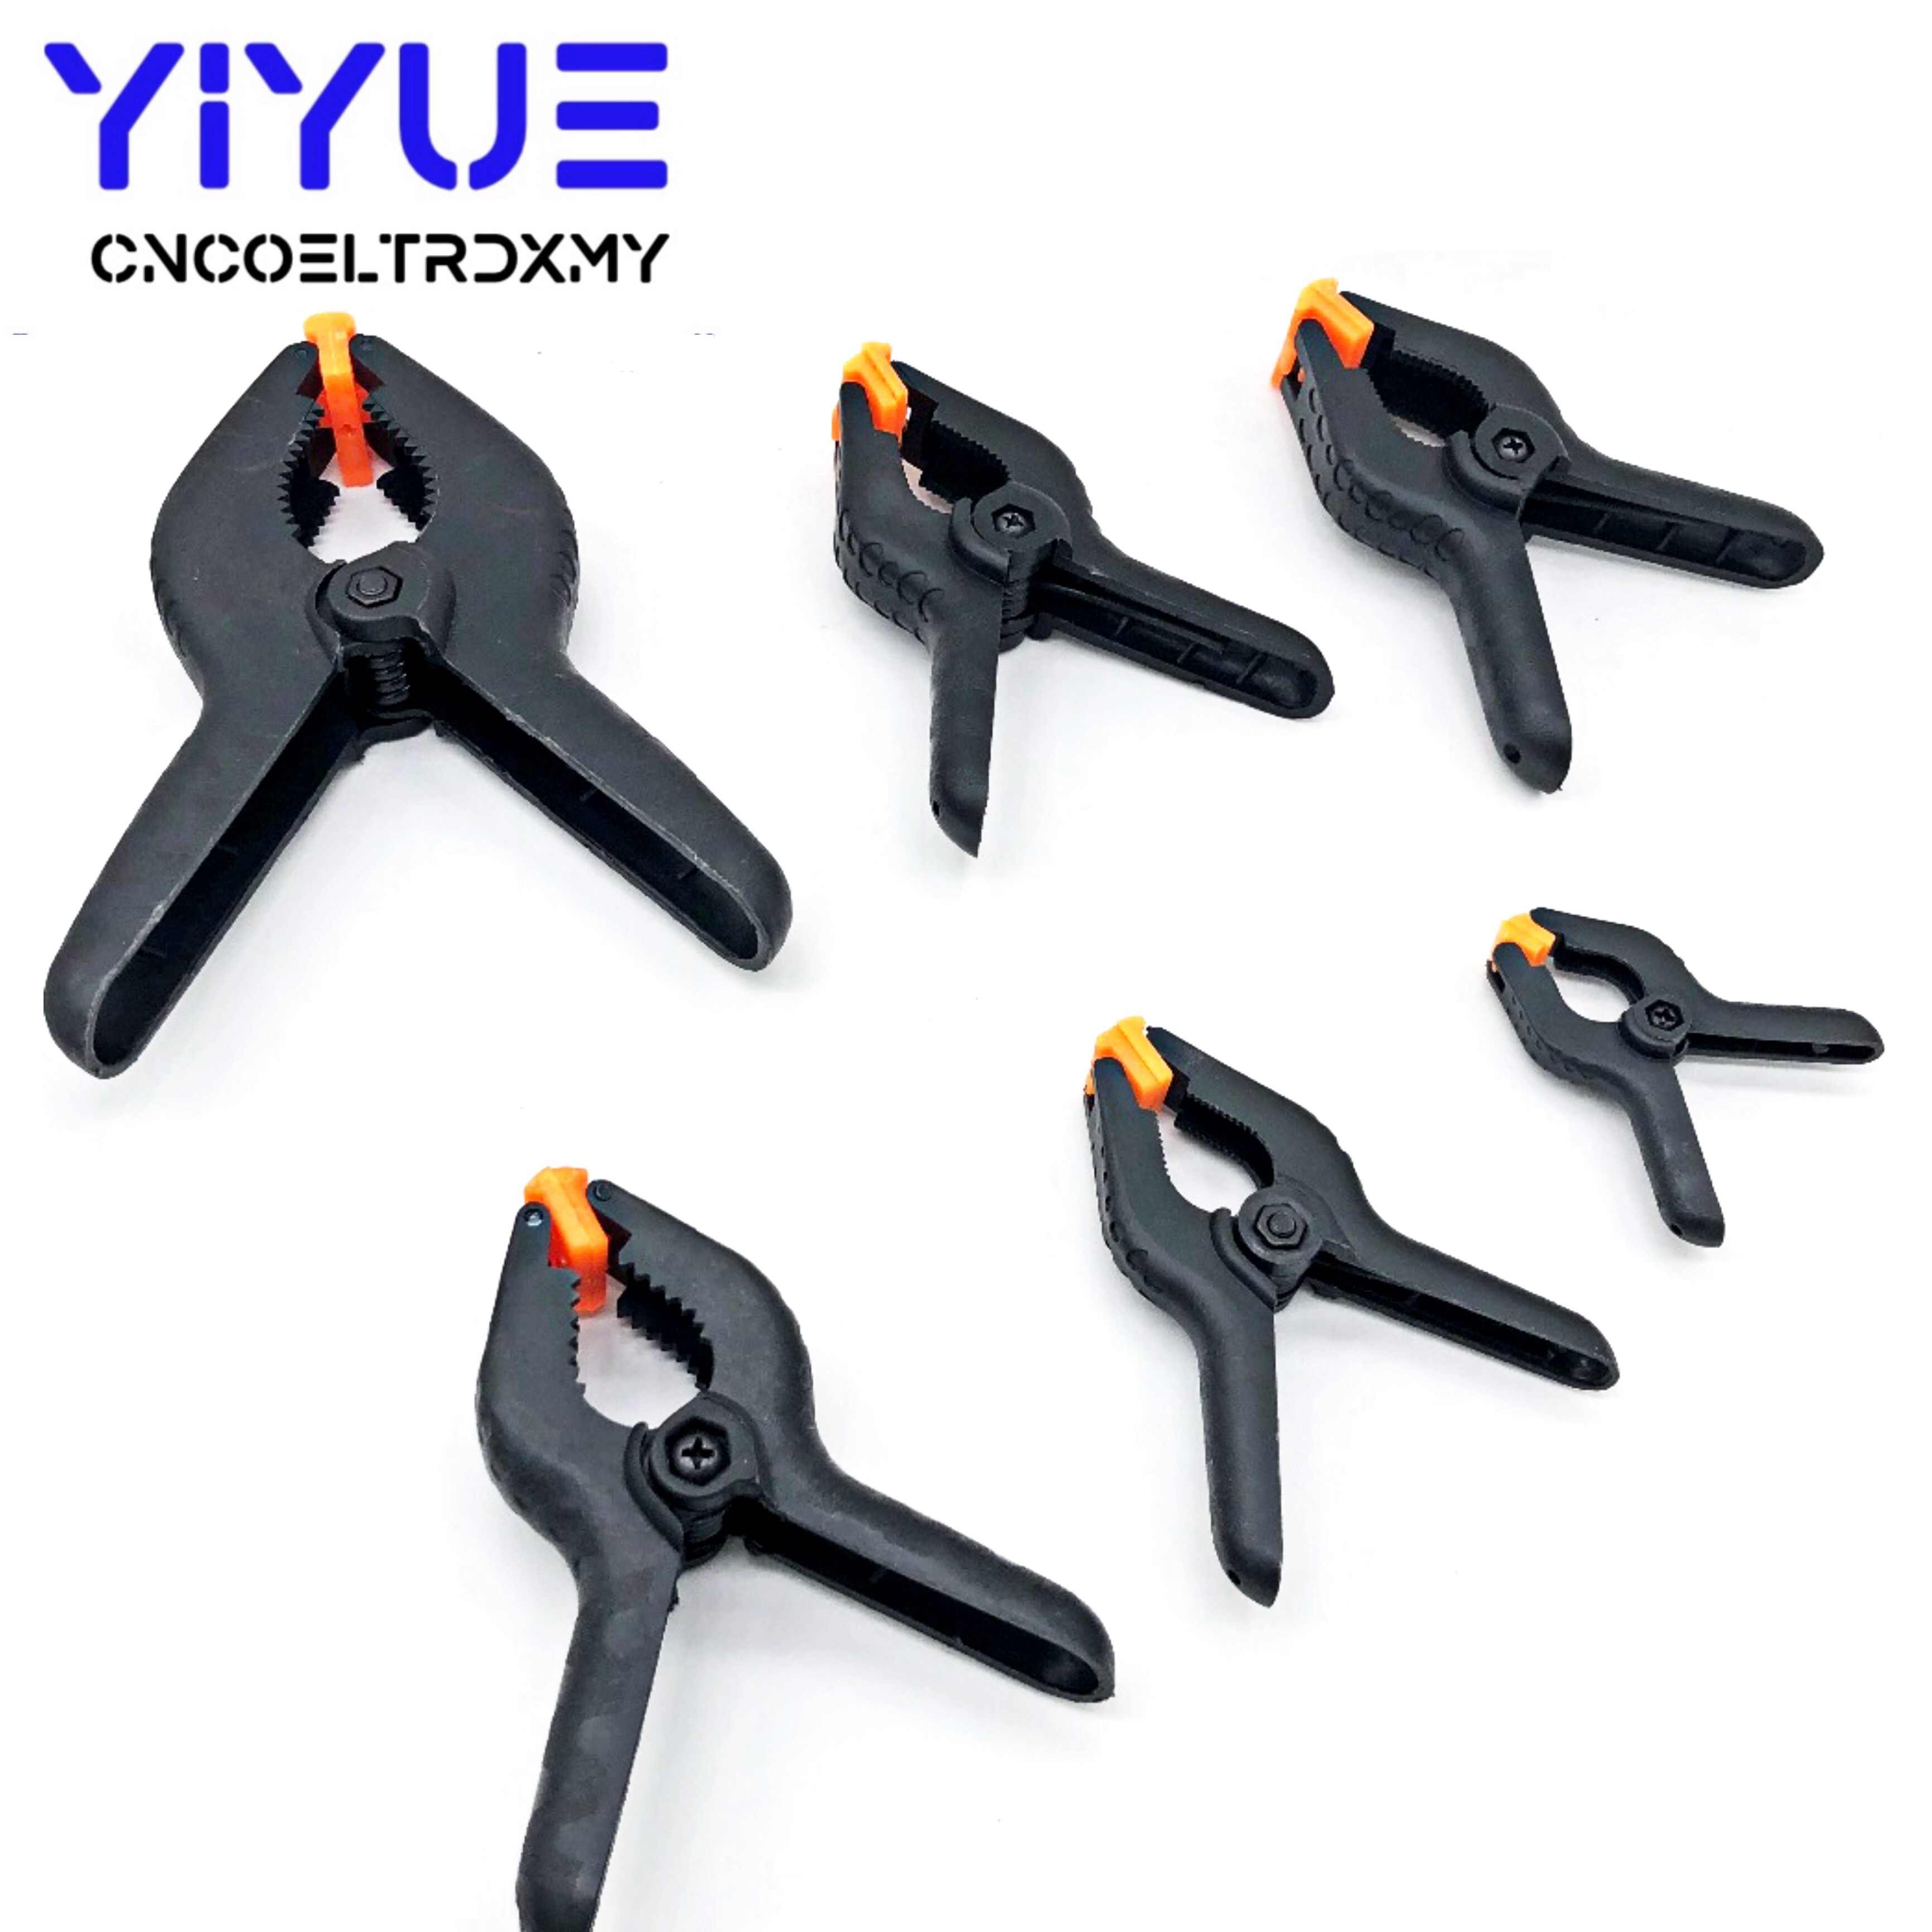 """10PCS 6/"""" Heavy Duty Plastic Spring Clamps Craft Woodworking Grip Clips DIY Tools"""